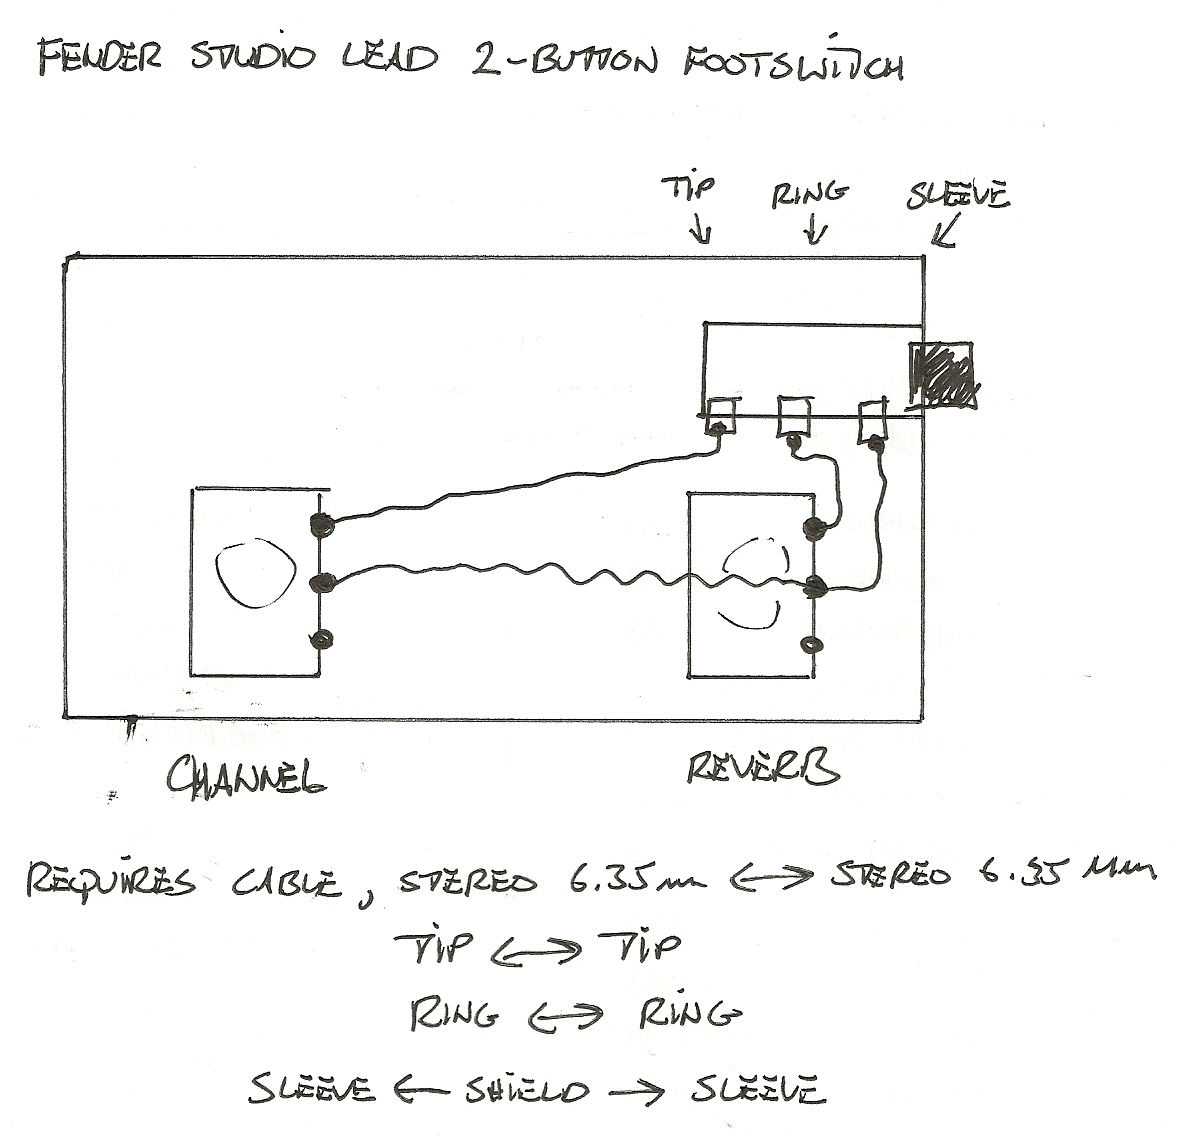 peavey 2 on footswitch wiring diagram on free printable wiring diagrams